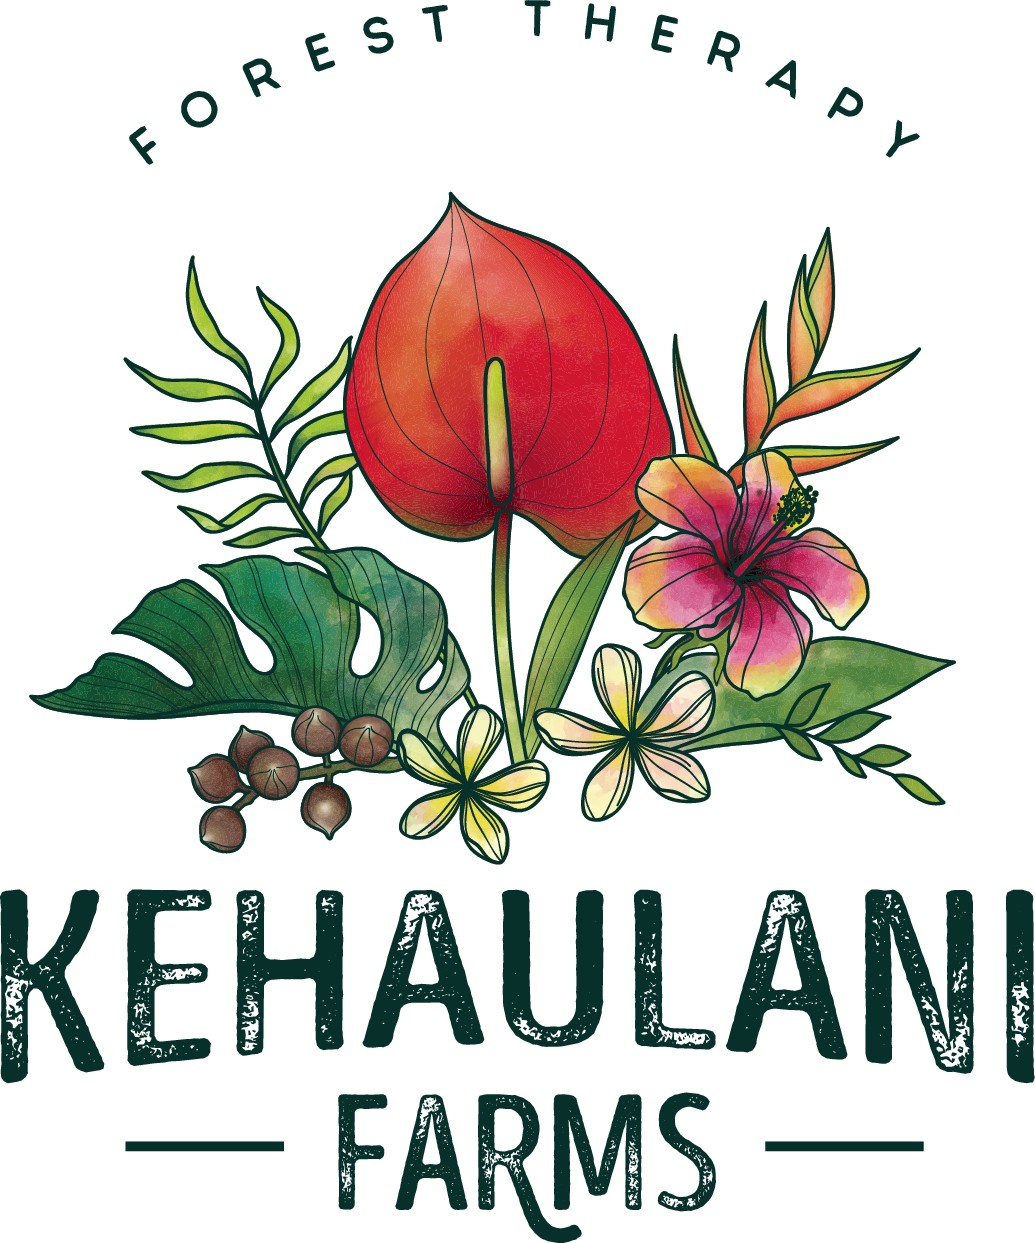 Hawaiian Forest Therapy Guide and Organic Farmer needs a logo